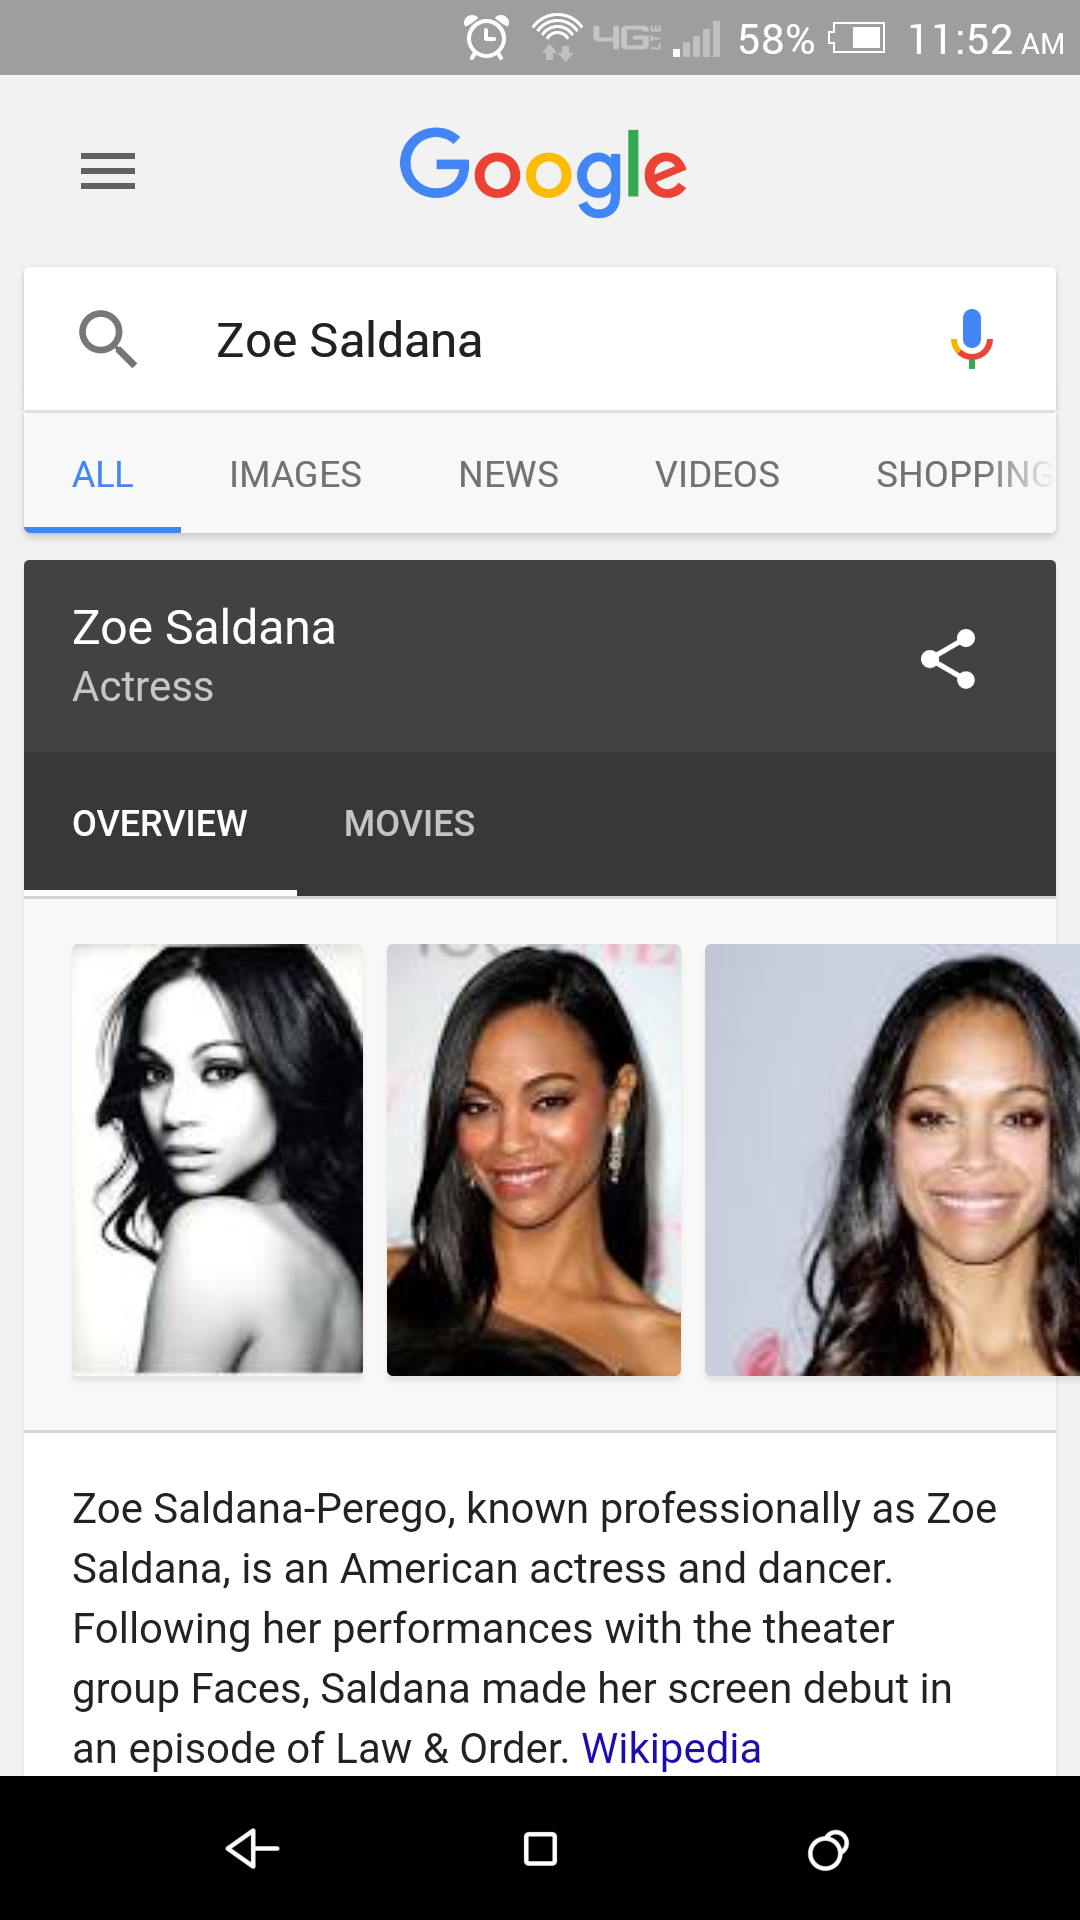 Google Voice Search Zoe Saldana